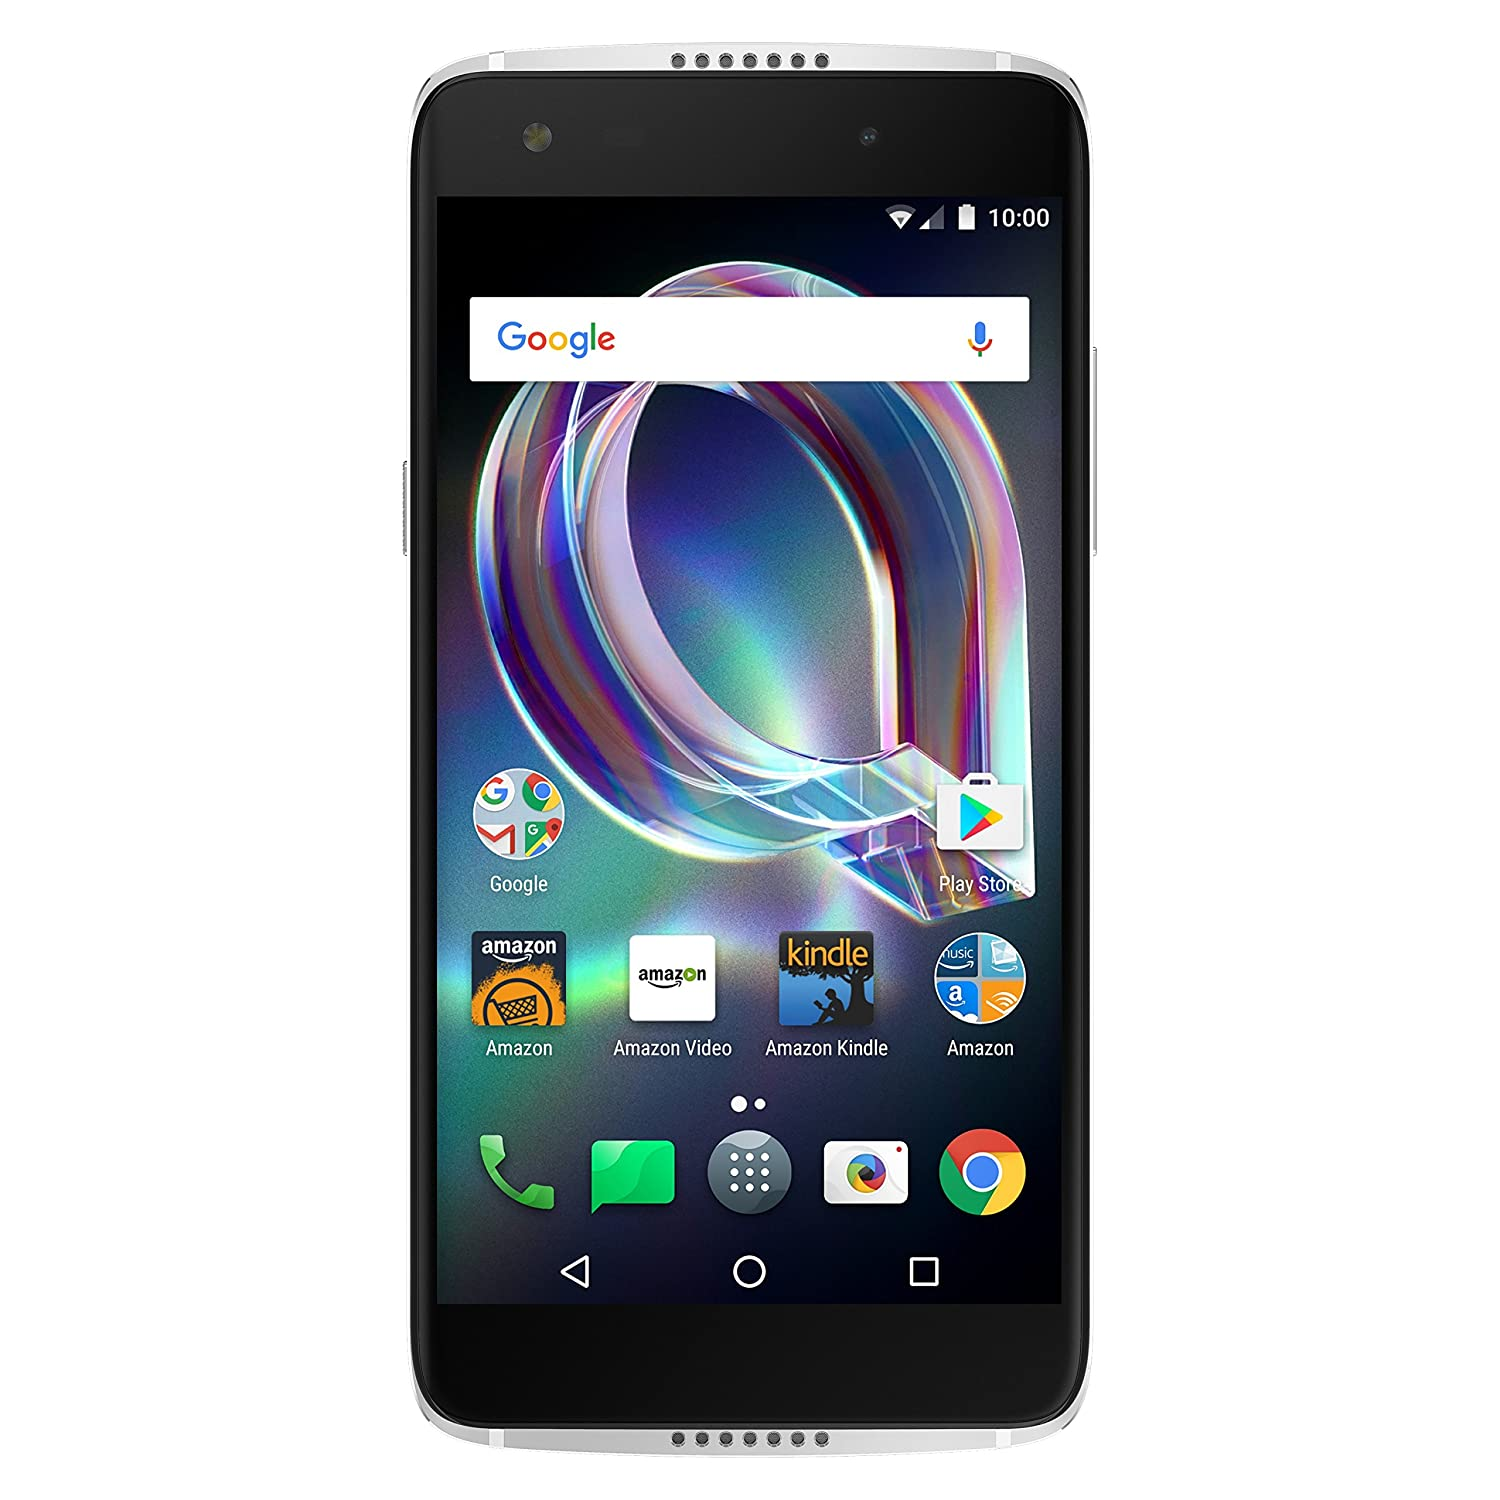 Amazon prime membership phone number - Amazon Com Alcatel Idol 5s 32 Gb Unlocked At T Sprint T Mobile Verizon Crystal Grey Prime Exclusive With Lockscreen Offers Ads Cell Phones